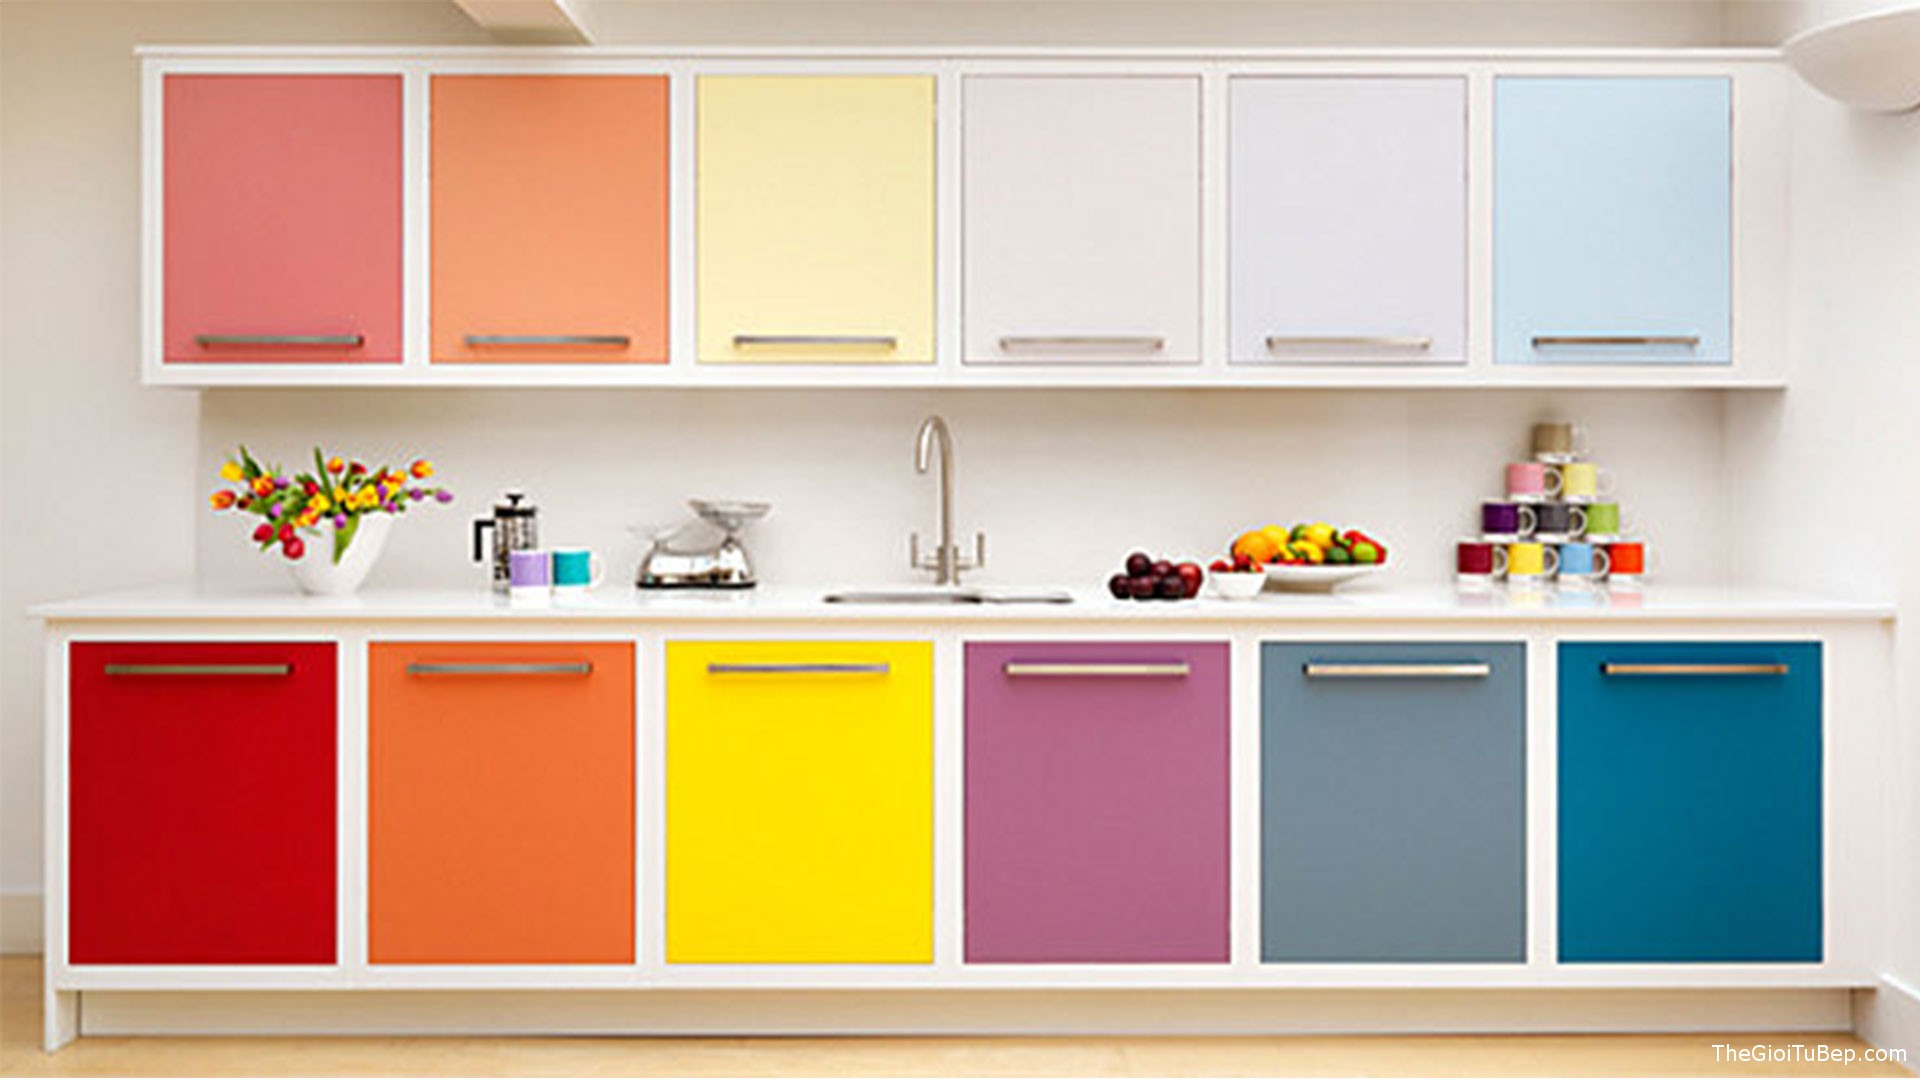 great-latex-painting-laminate-kitchen-cabinets-painting-laminate-cabinets-without-sanding-painting-laminate-cabinets-white-painting-laminate-cabinets-with-wood-trim-painting-laminate-cabinets-wit